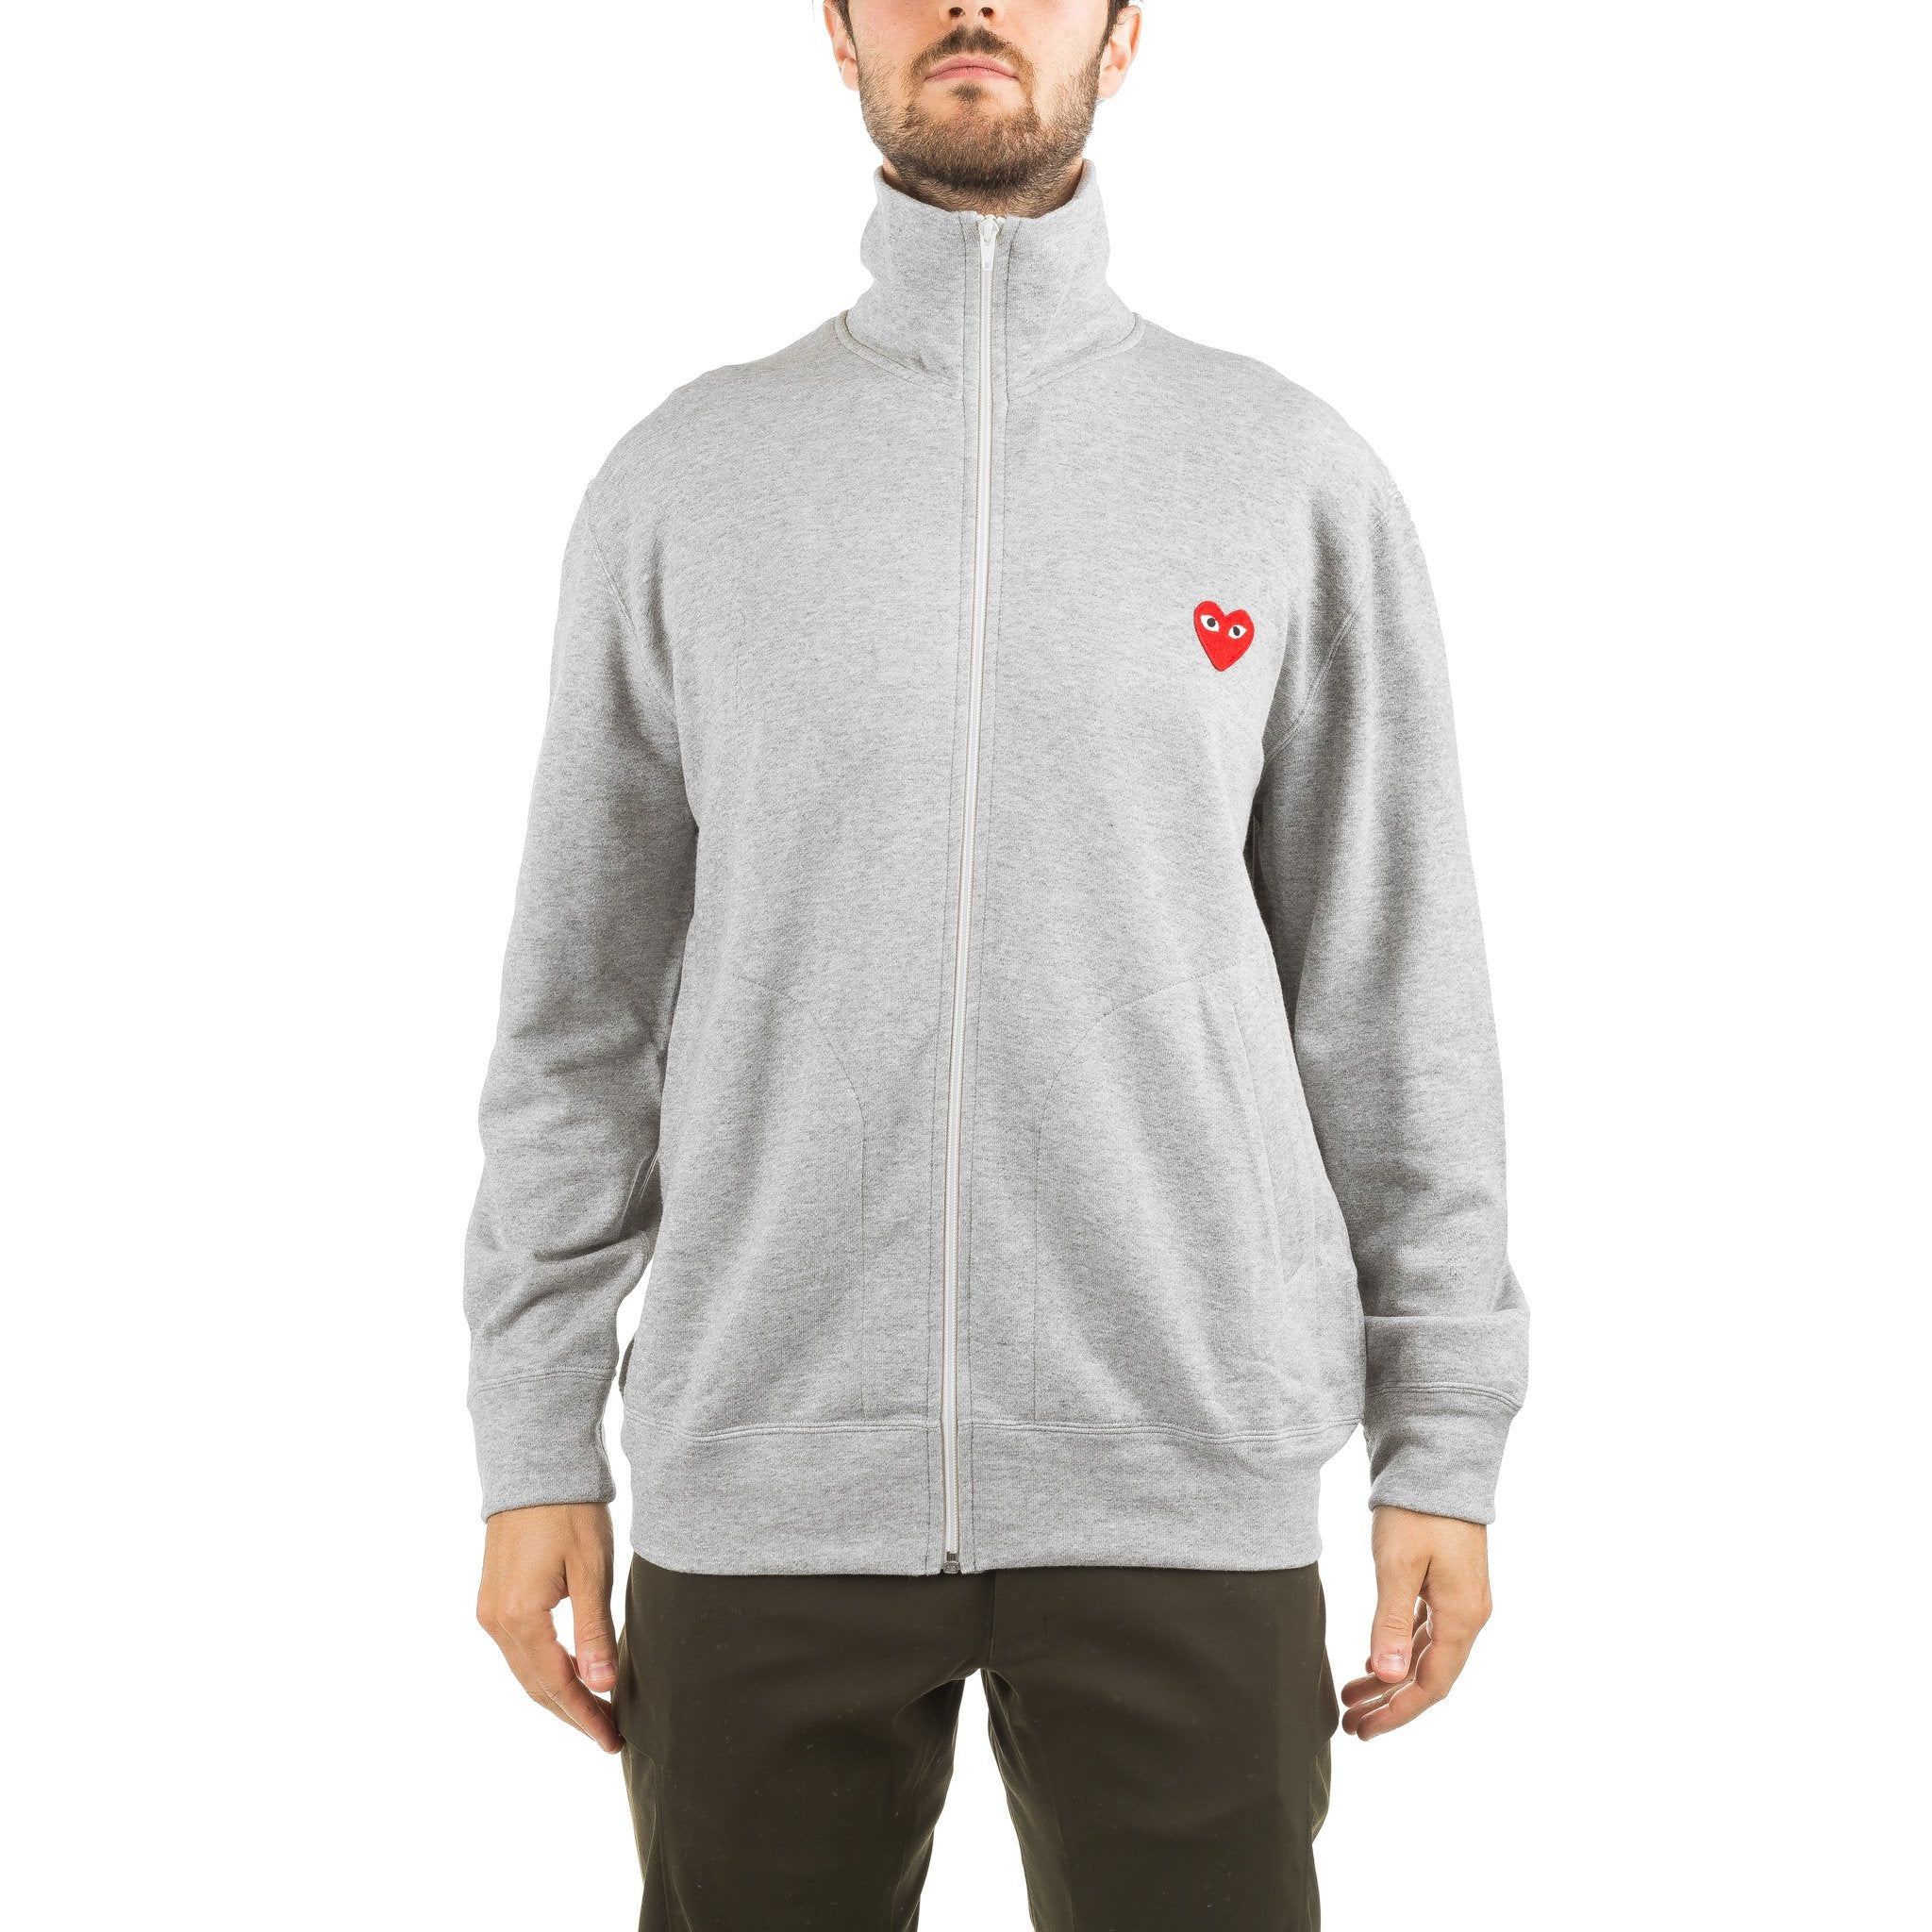 Multi Heart Back Print Track Jacket AZ-T252-051-1 Grey